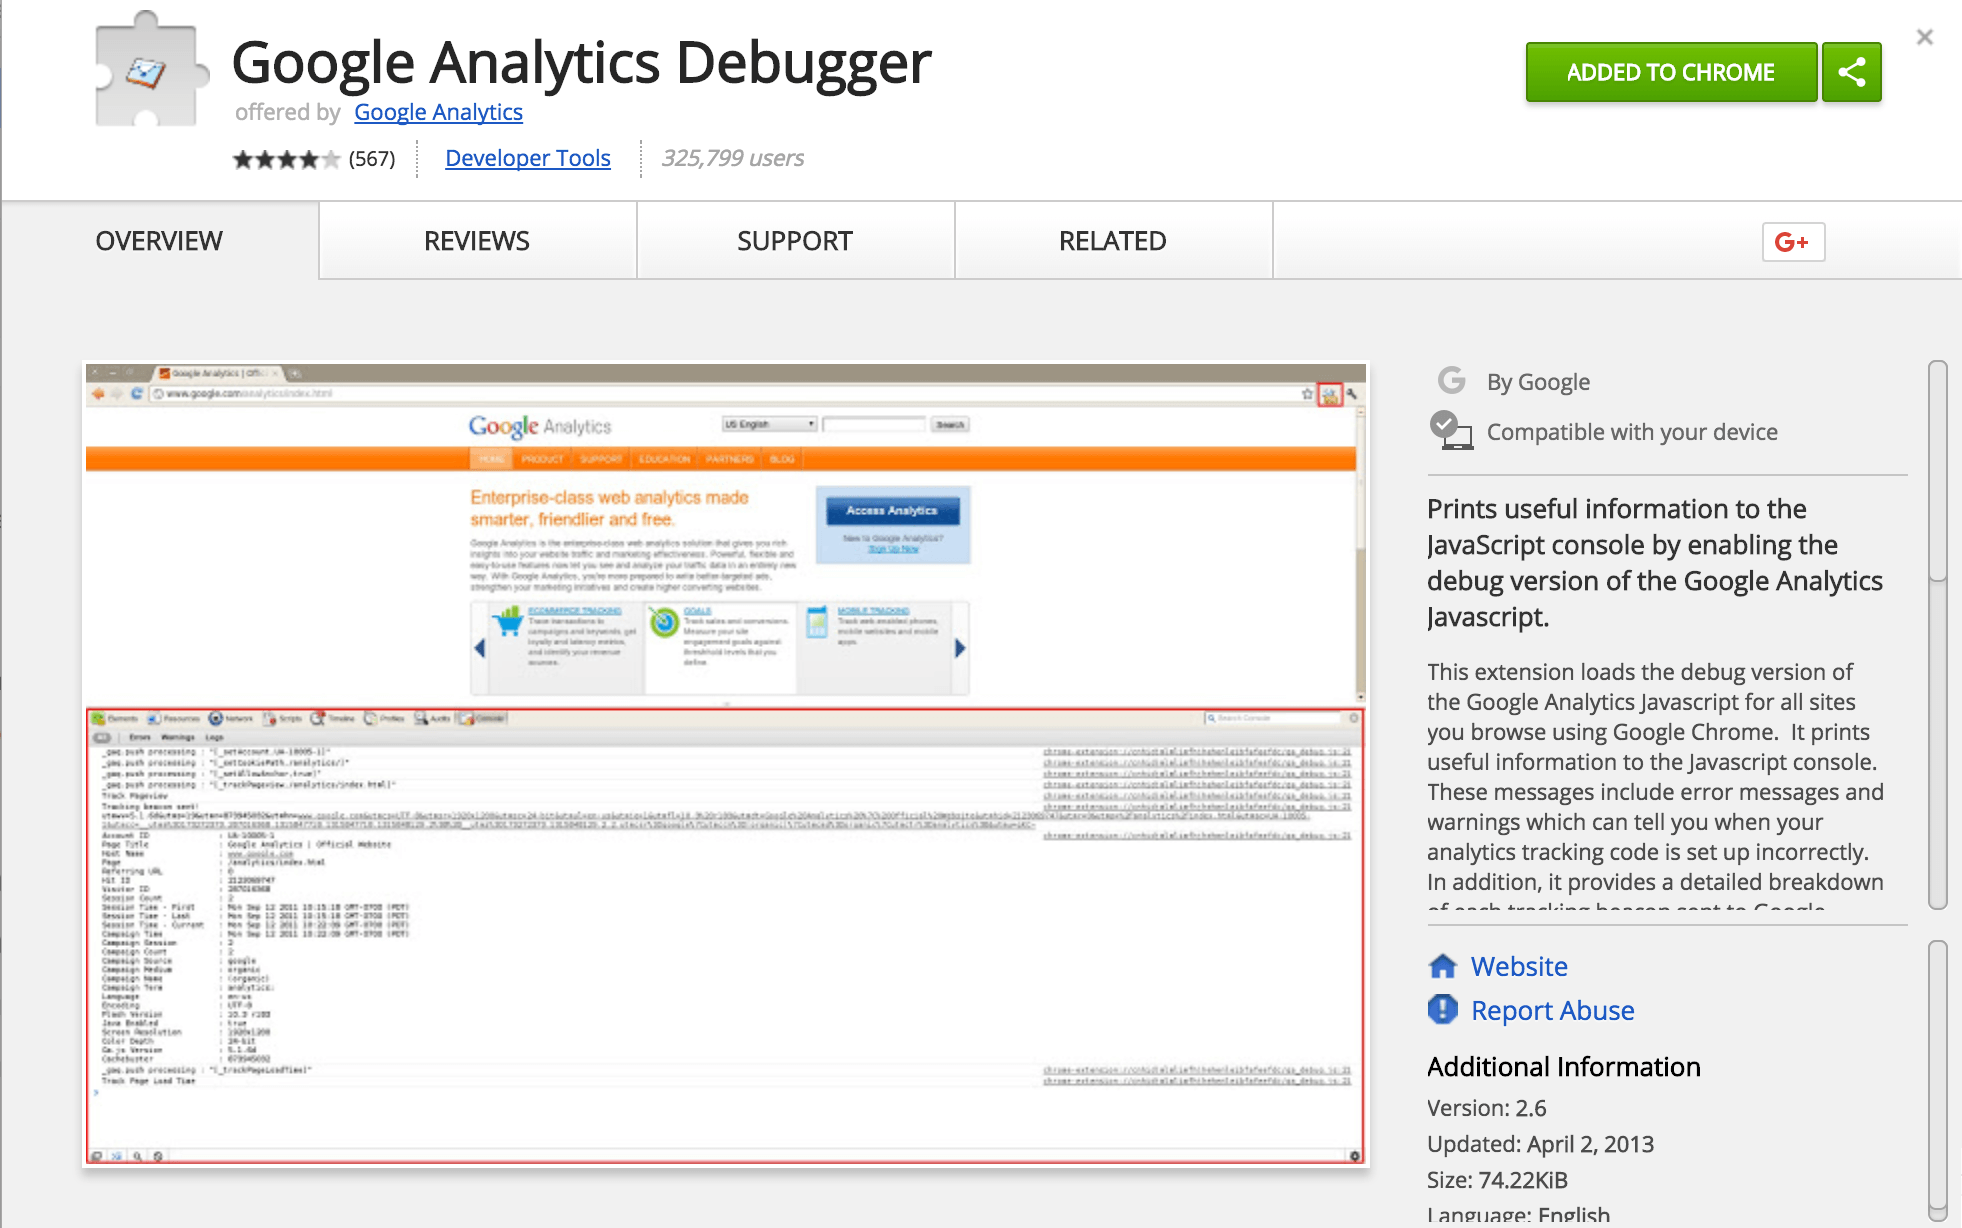 Google Analytics Debugger